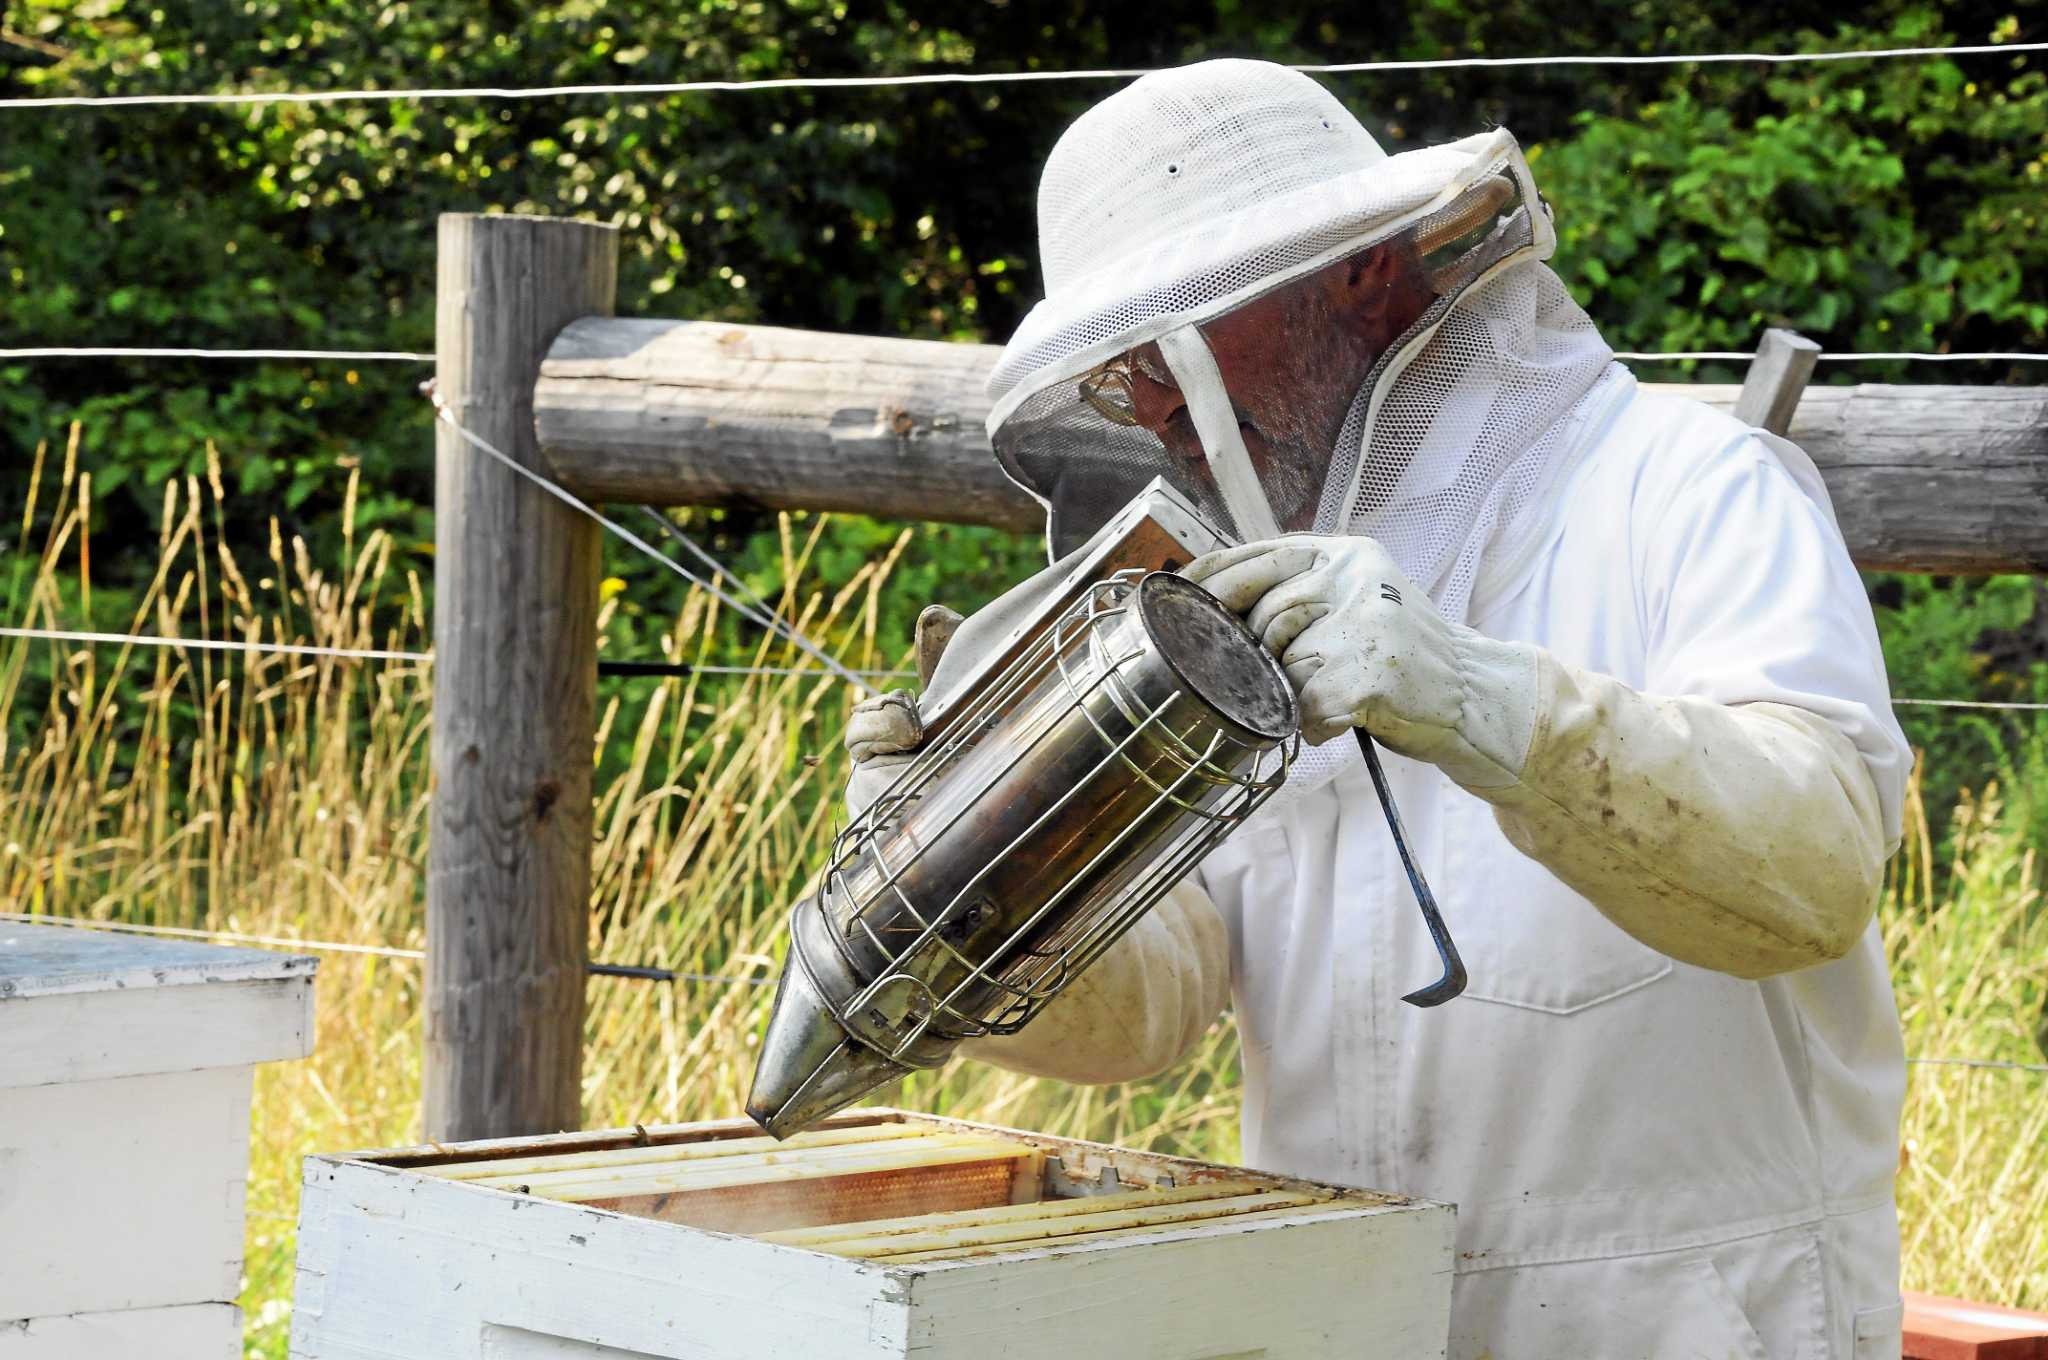 connecticut no land of honey for bees the register citizen